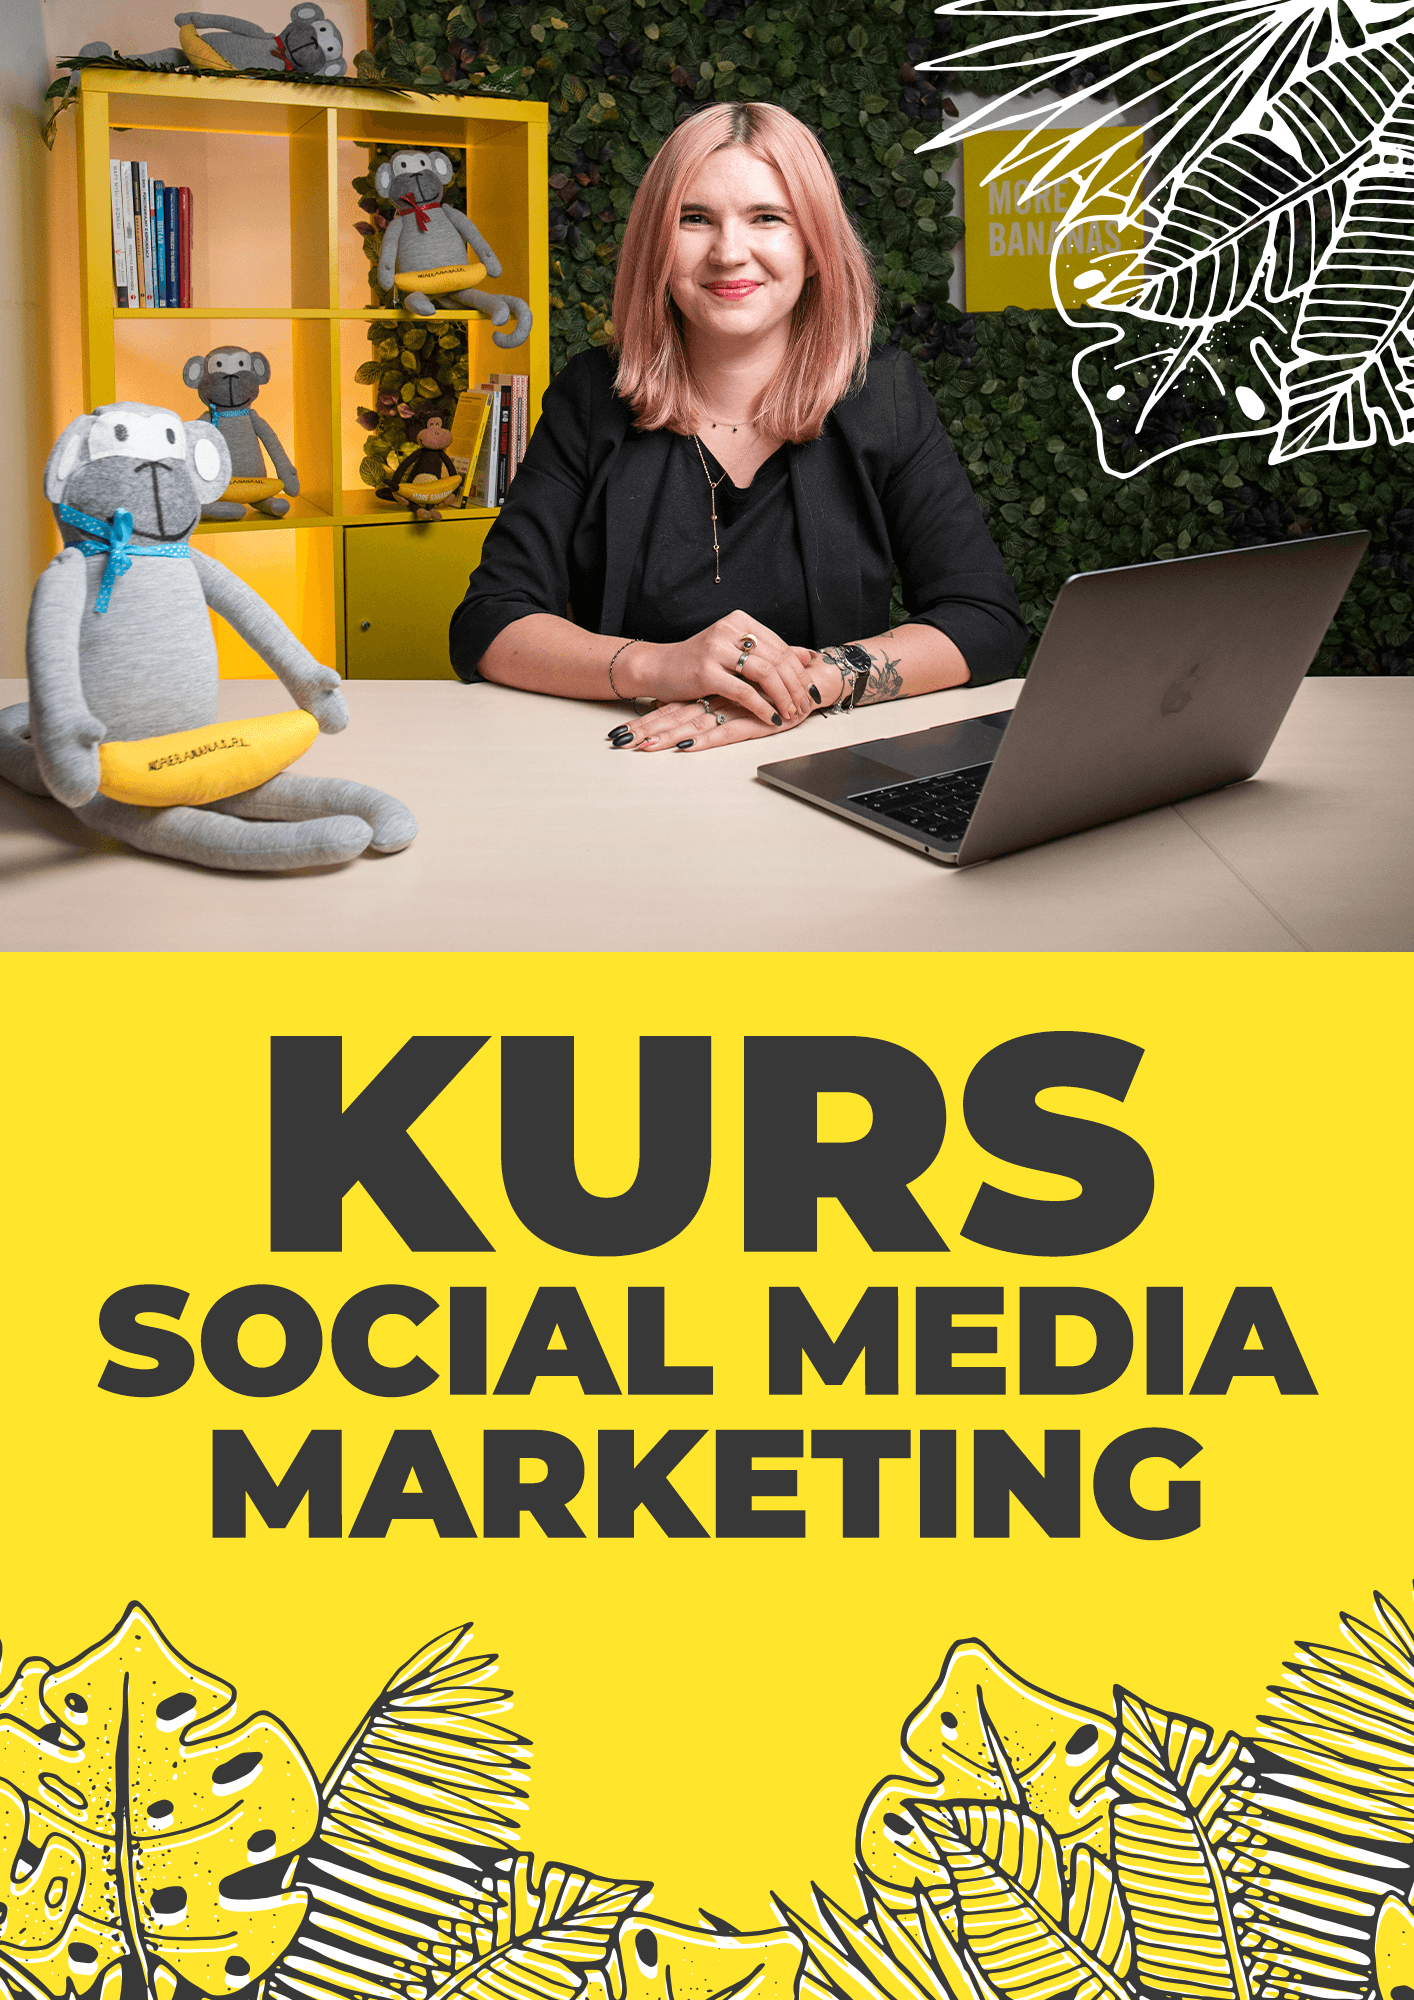 Kurs Social Media Marketing